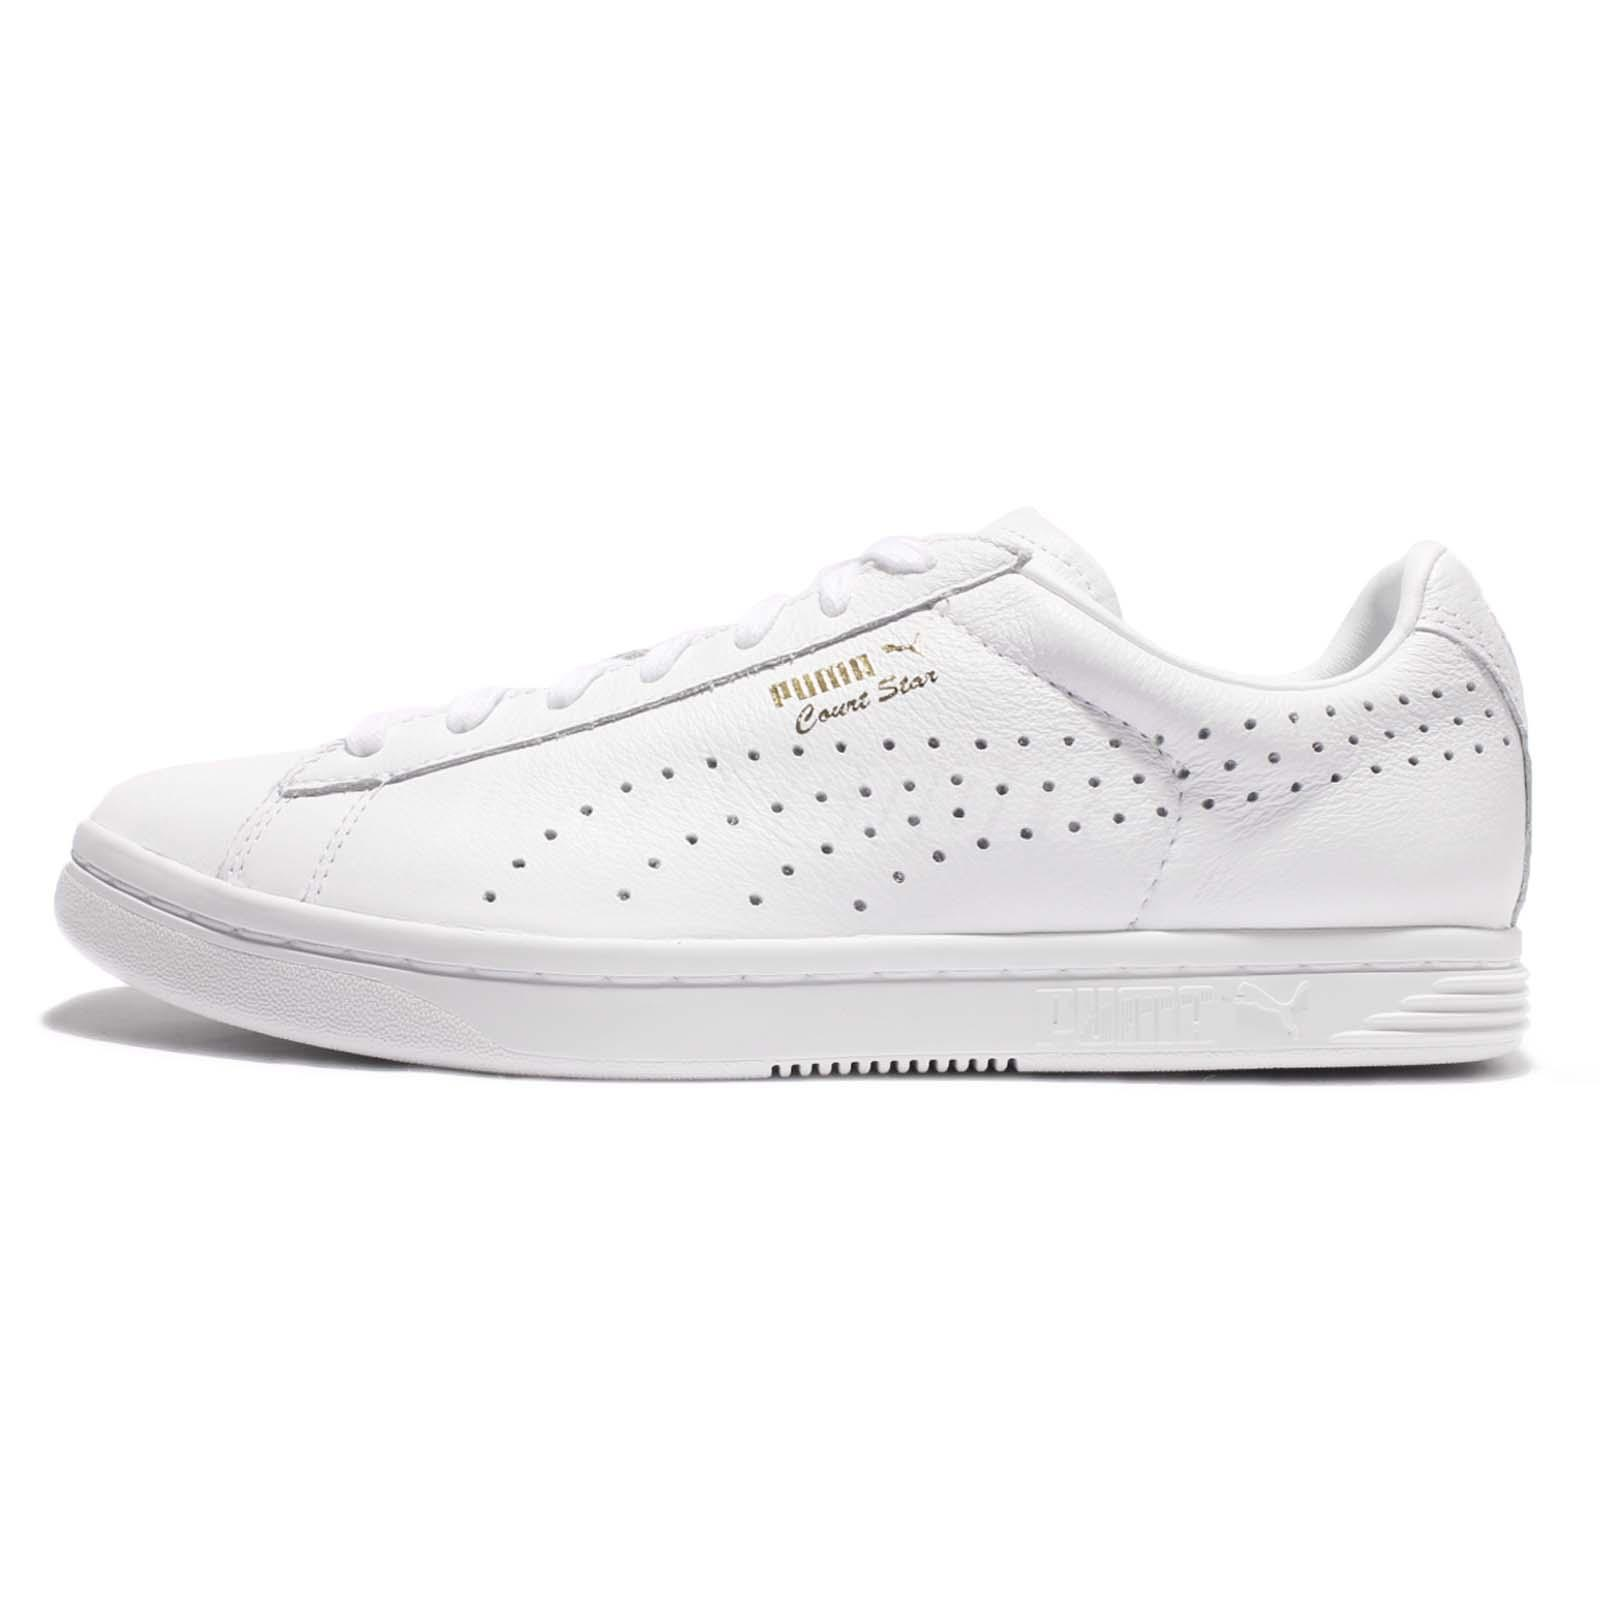 Chaussures PUMA / COURT STAR CLE… NvHqw6